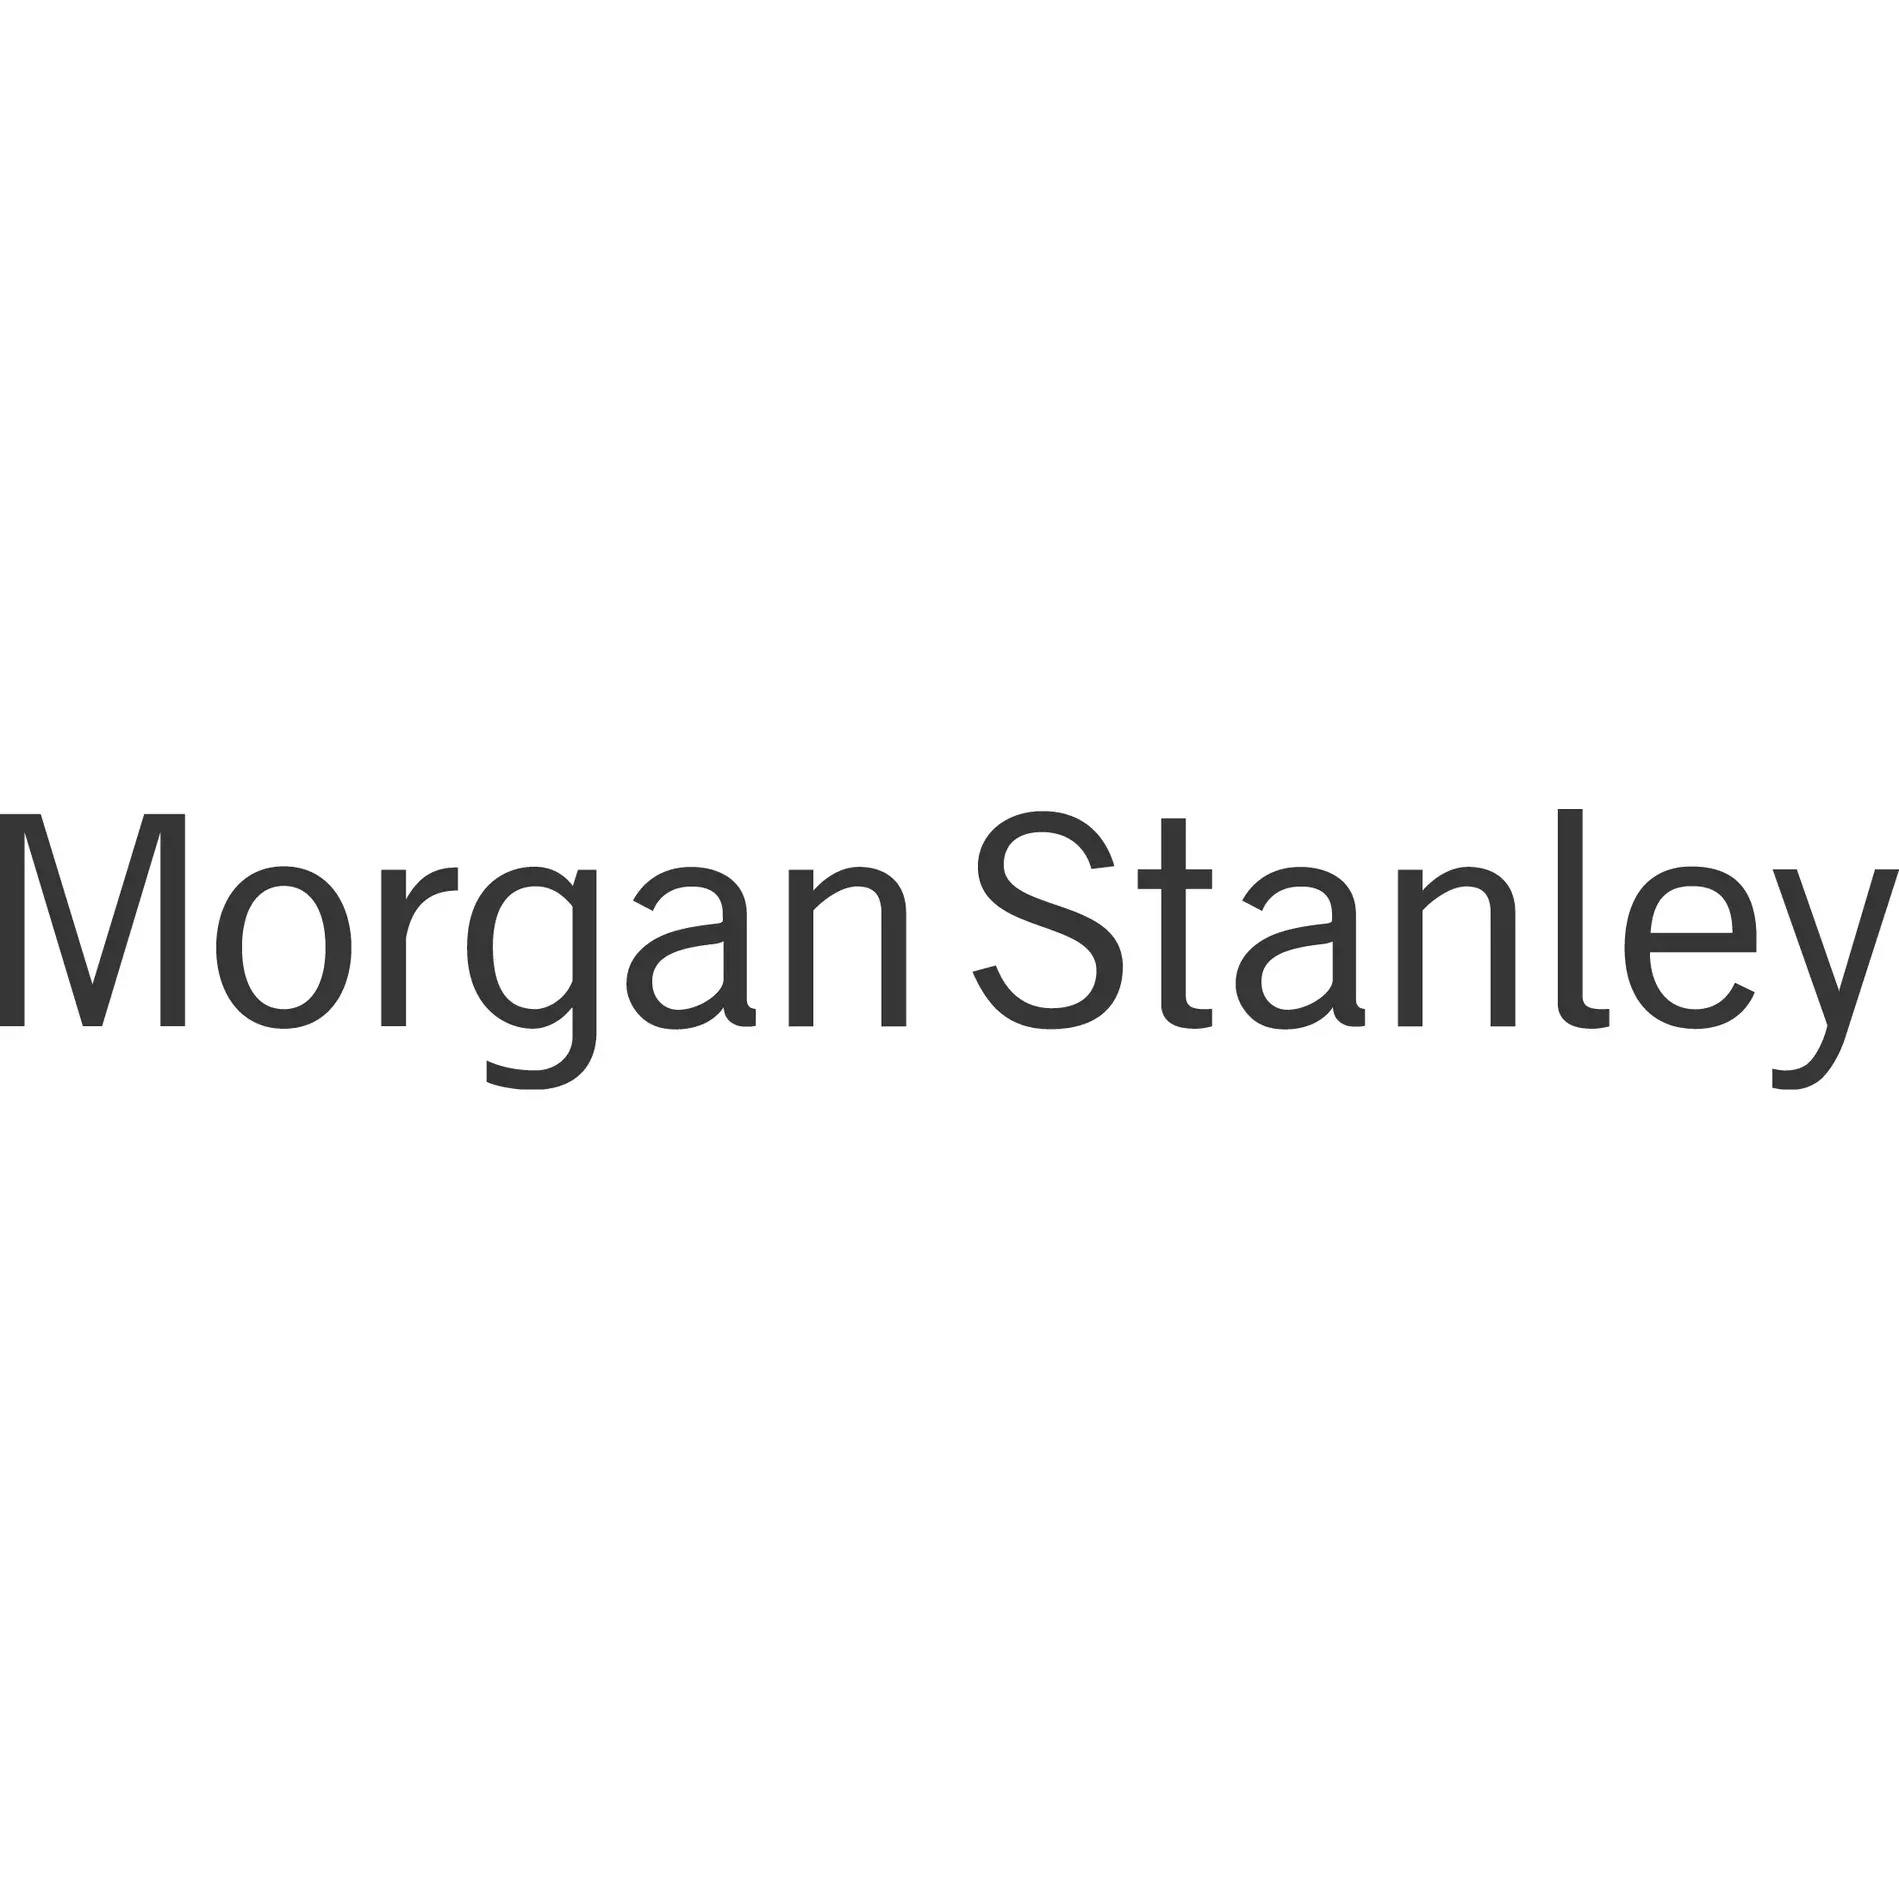 Vantage Wealth Management - Morgan Stanley | Financial Advisor in Atlanta,Georgia